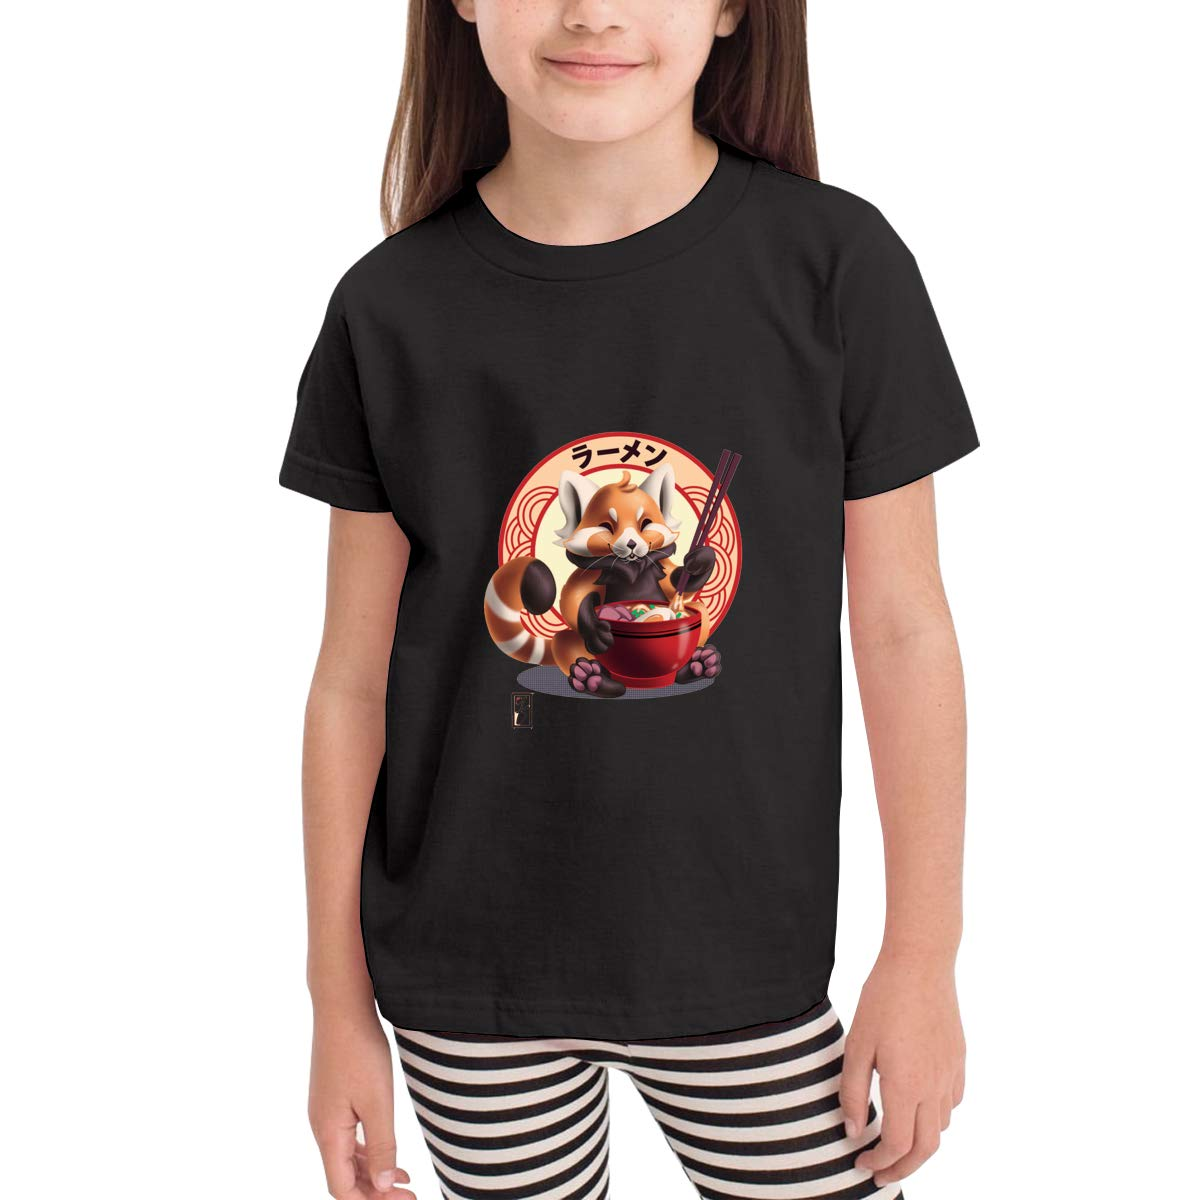 Red Panda Noms 100/% Cotton Toddler Baby Boys Girls Kids Short Sleeve T Shirt Top Tee Clothes 2-6 T